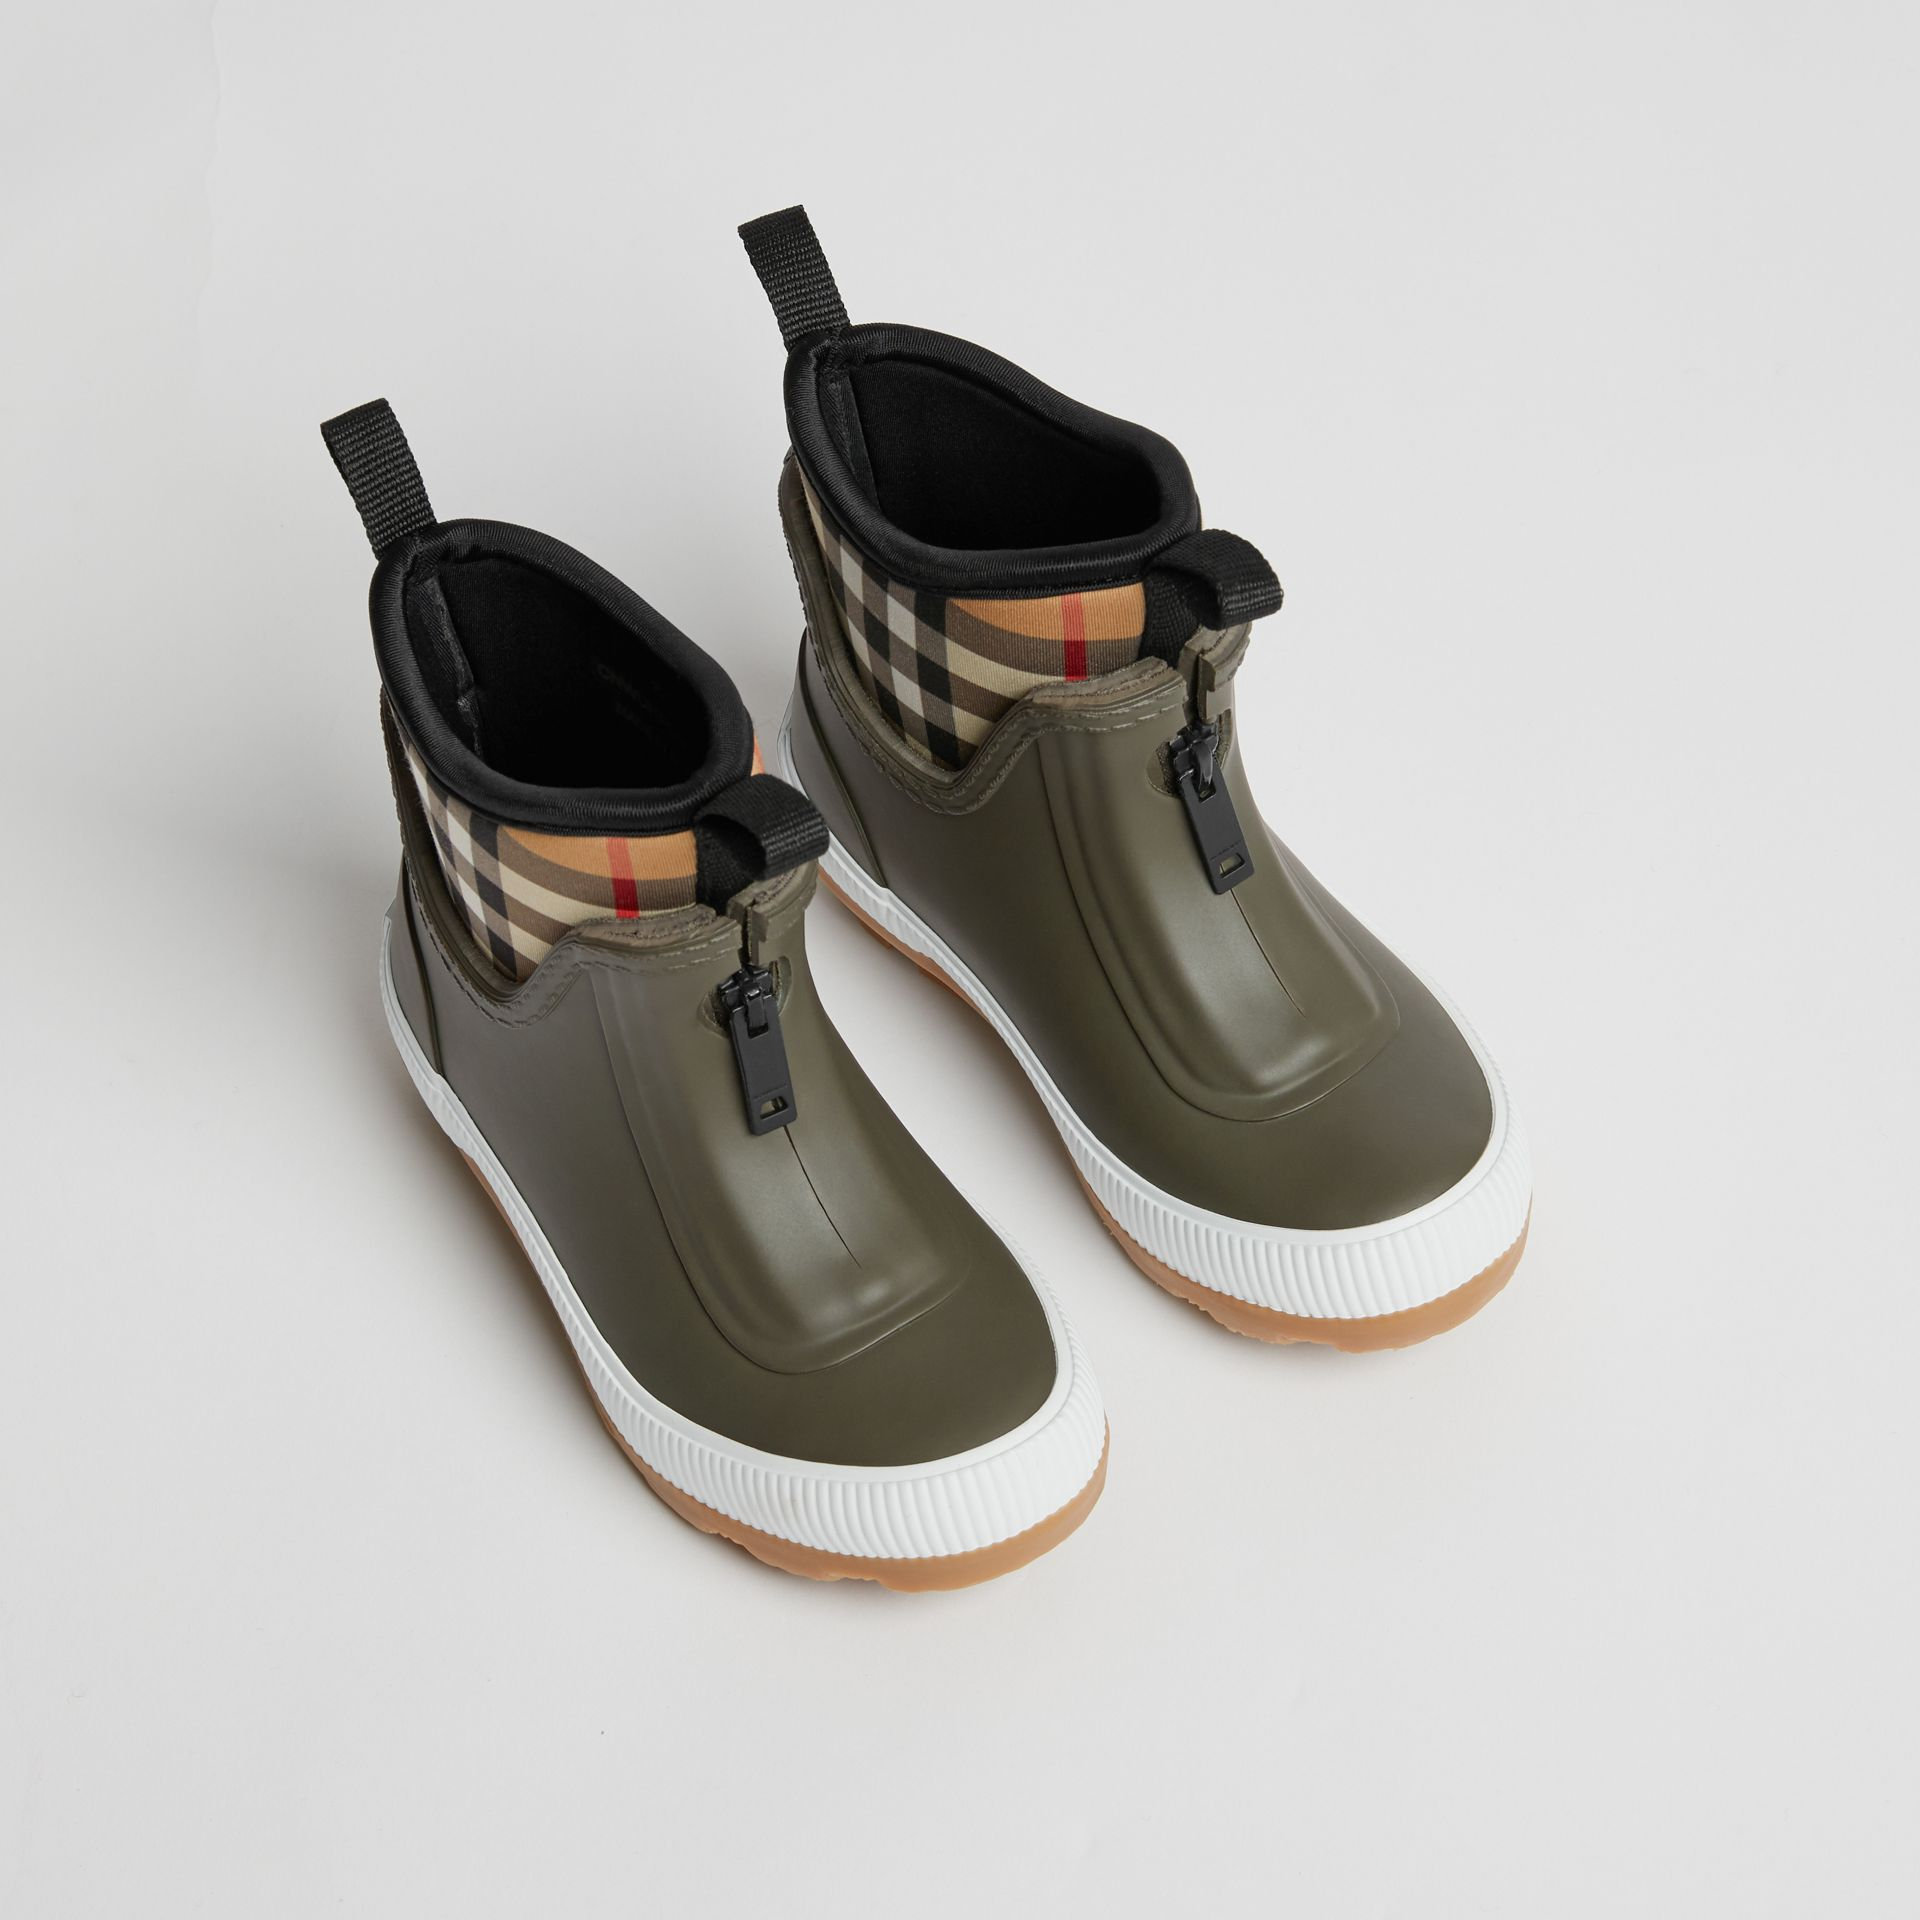 Vintage Check Neoprene and Rubber Rain Boots in Military Green | Burberry United Kingdom - gallery image 0